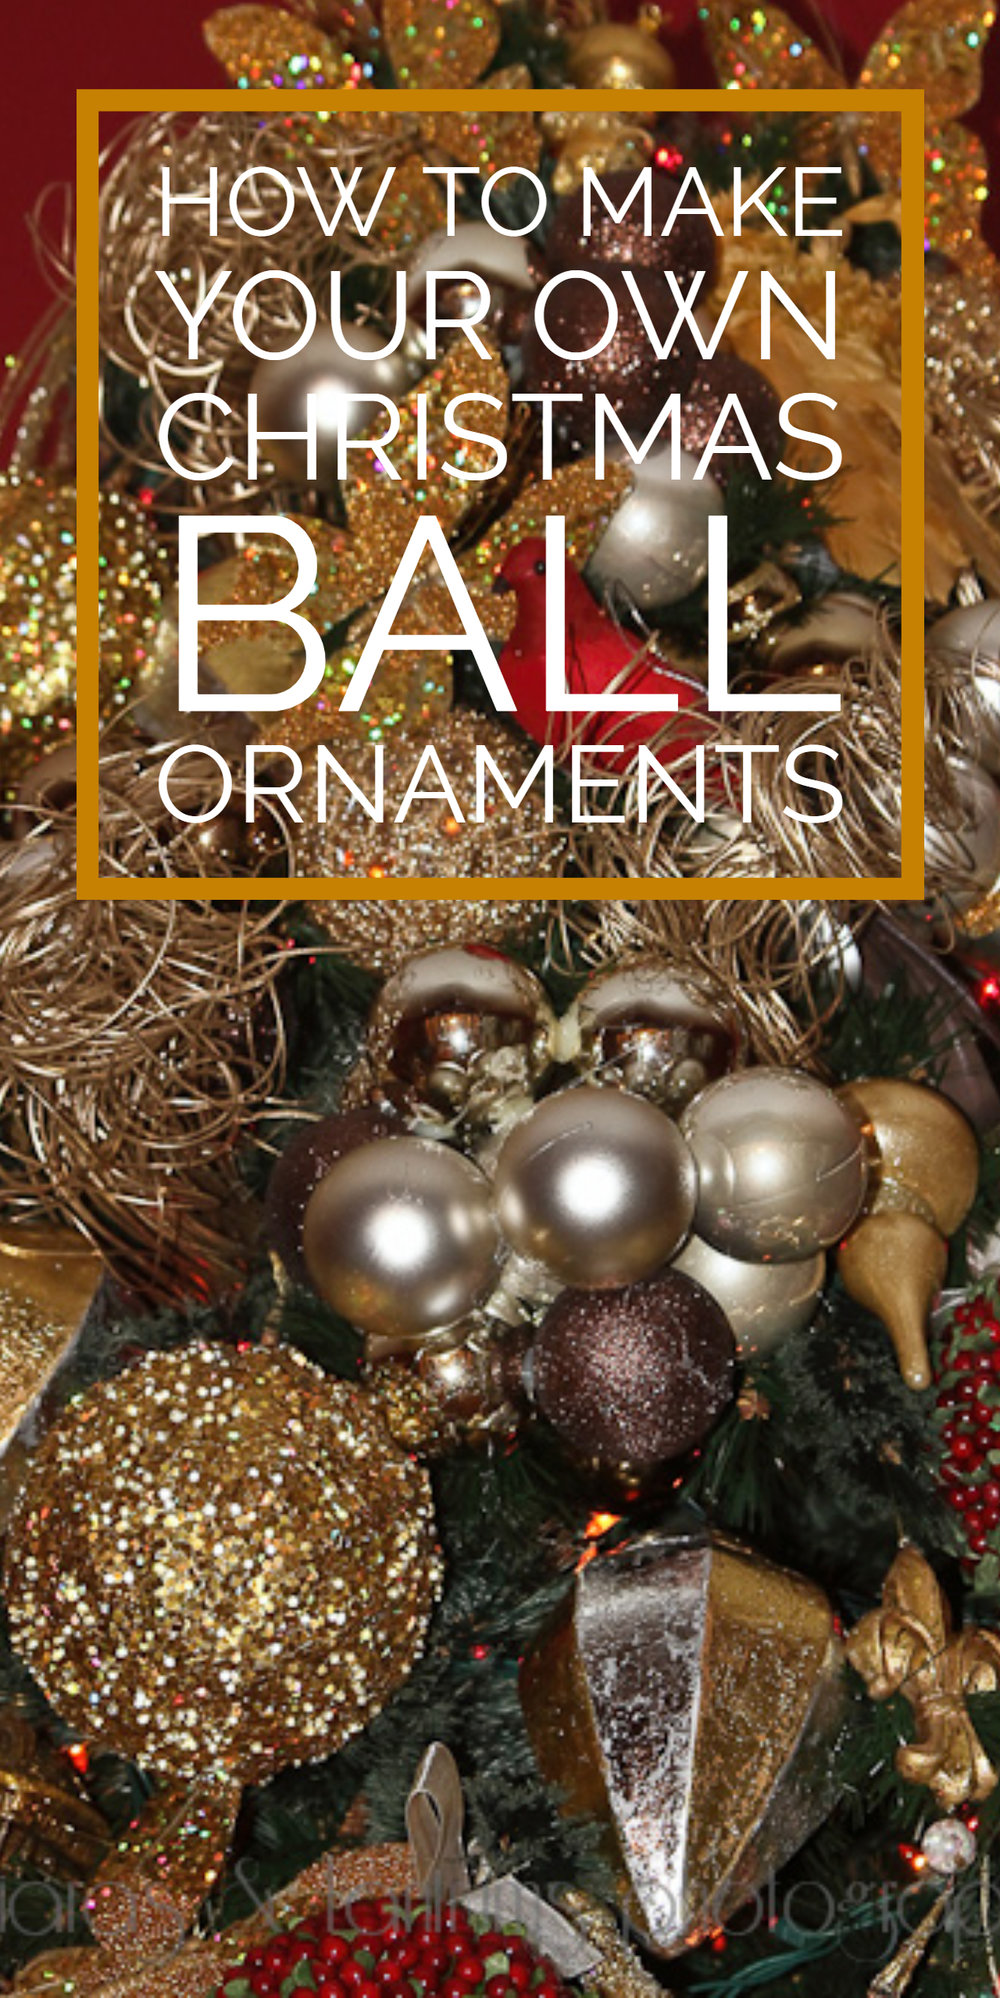 How To Make Your Own Christmas Ball Ornaments